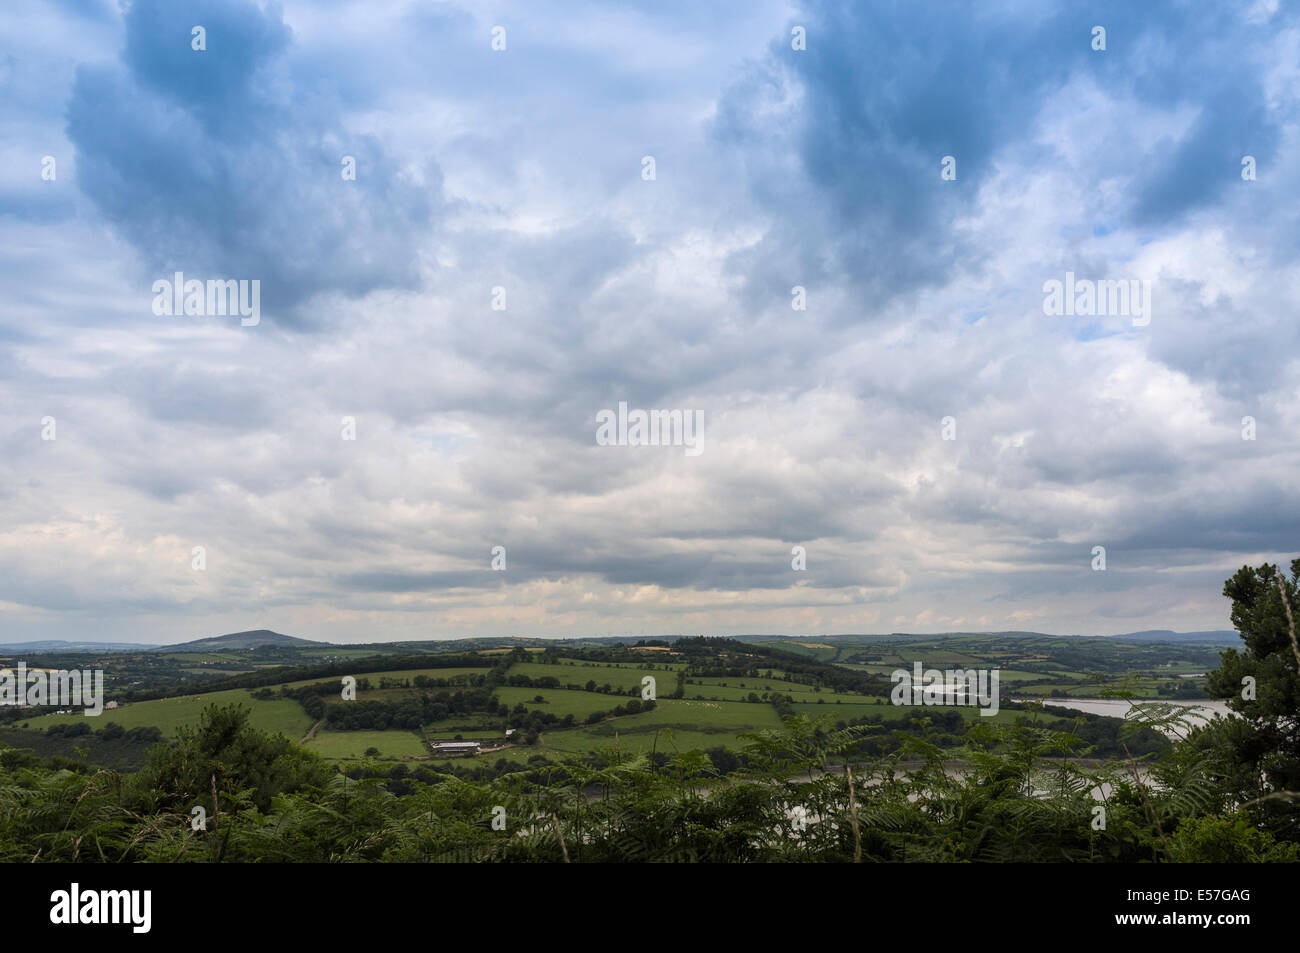 Overcast sky in summer seen from the Minaun Hill in the Faithlegg area of County Waterford, Ireland. - Stock Image